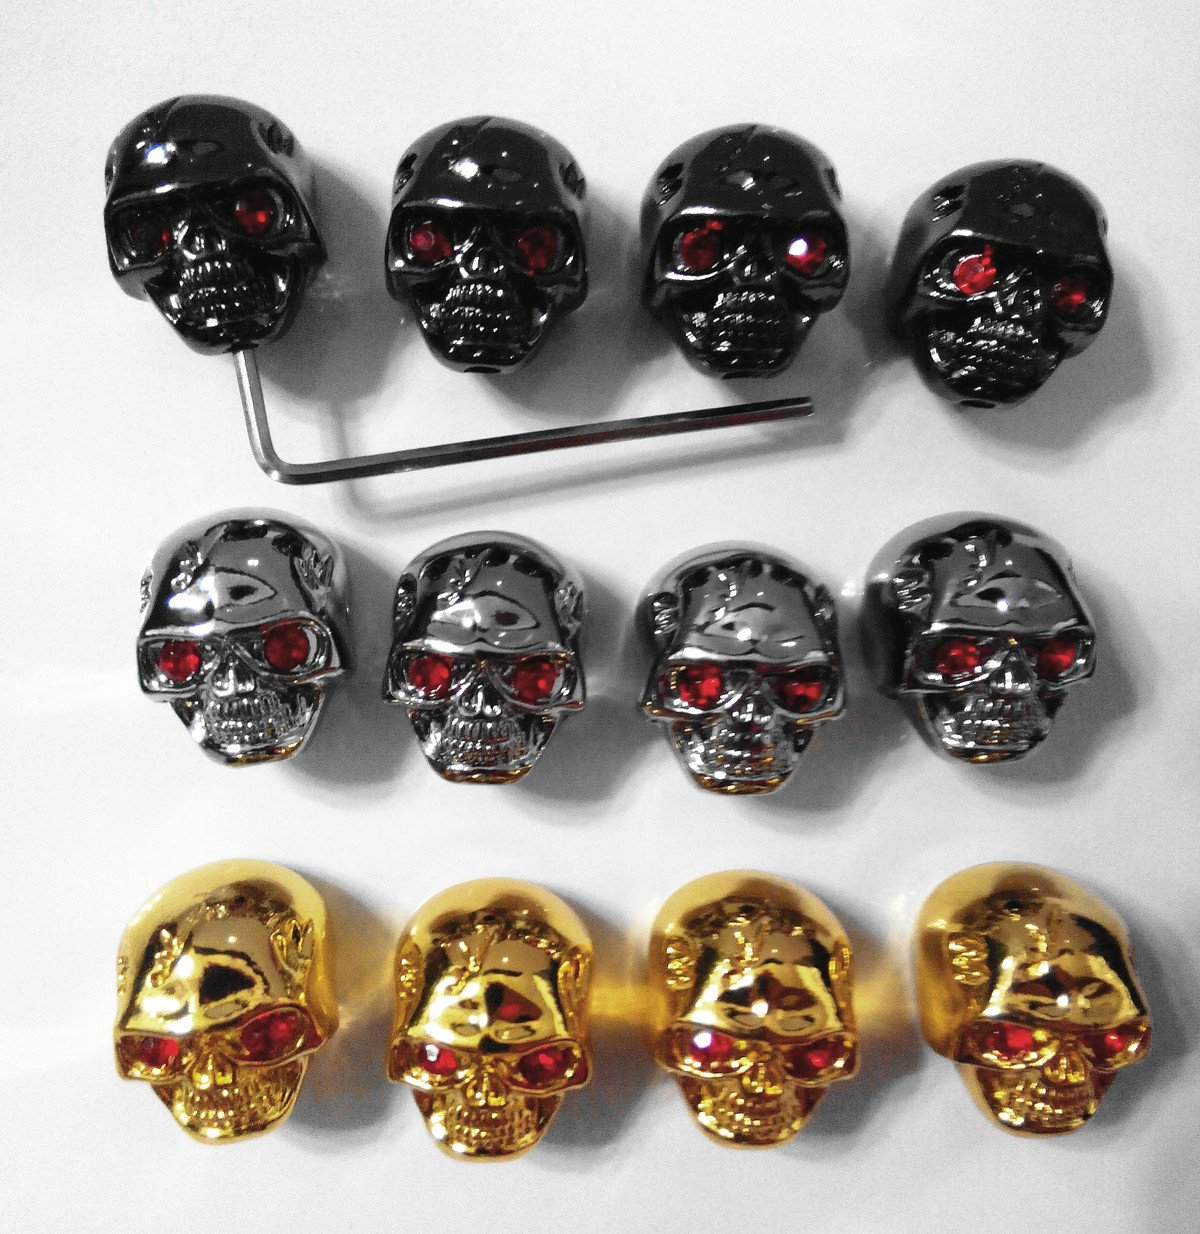 Kmise pure0035 12Skull Head Knob Volume Tone pot Control Knob For Gibson LP Guitar with wrench by Kmise (Image #1)